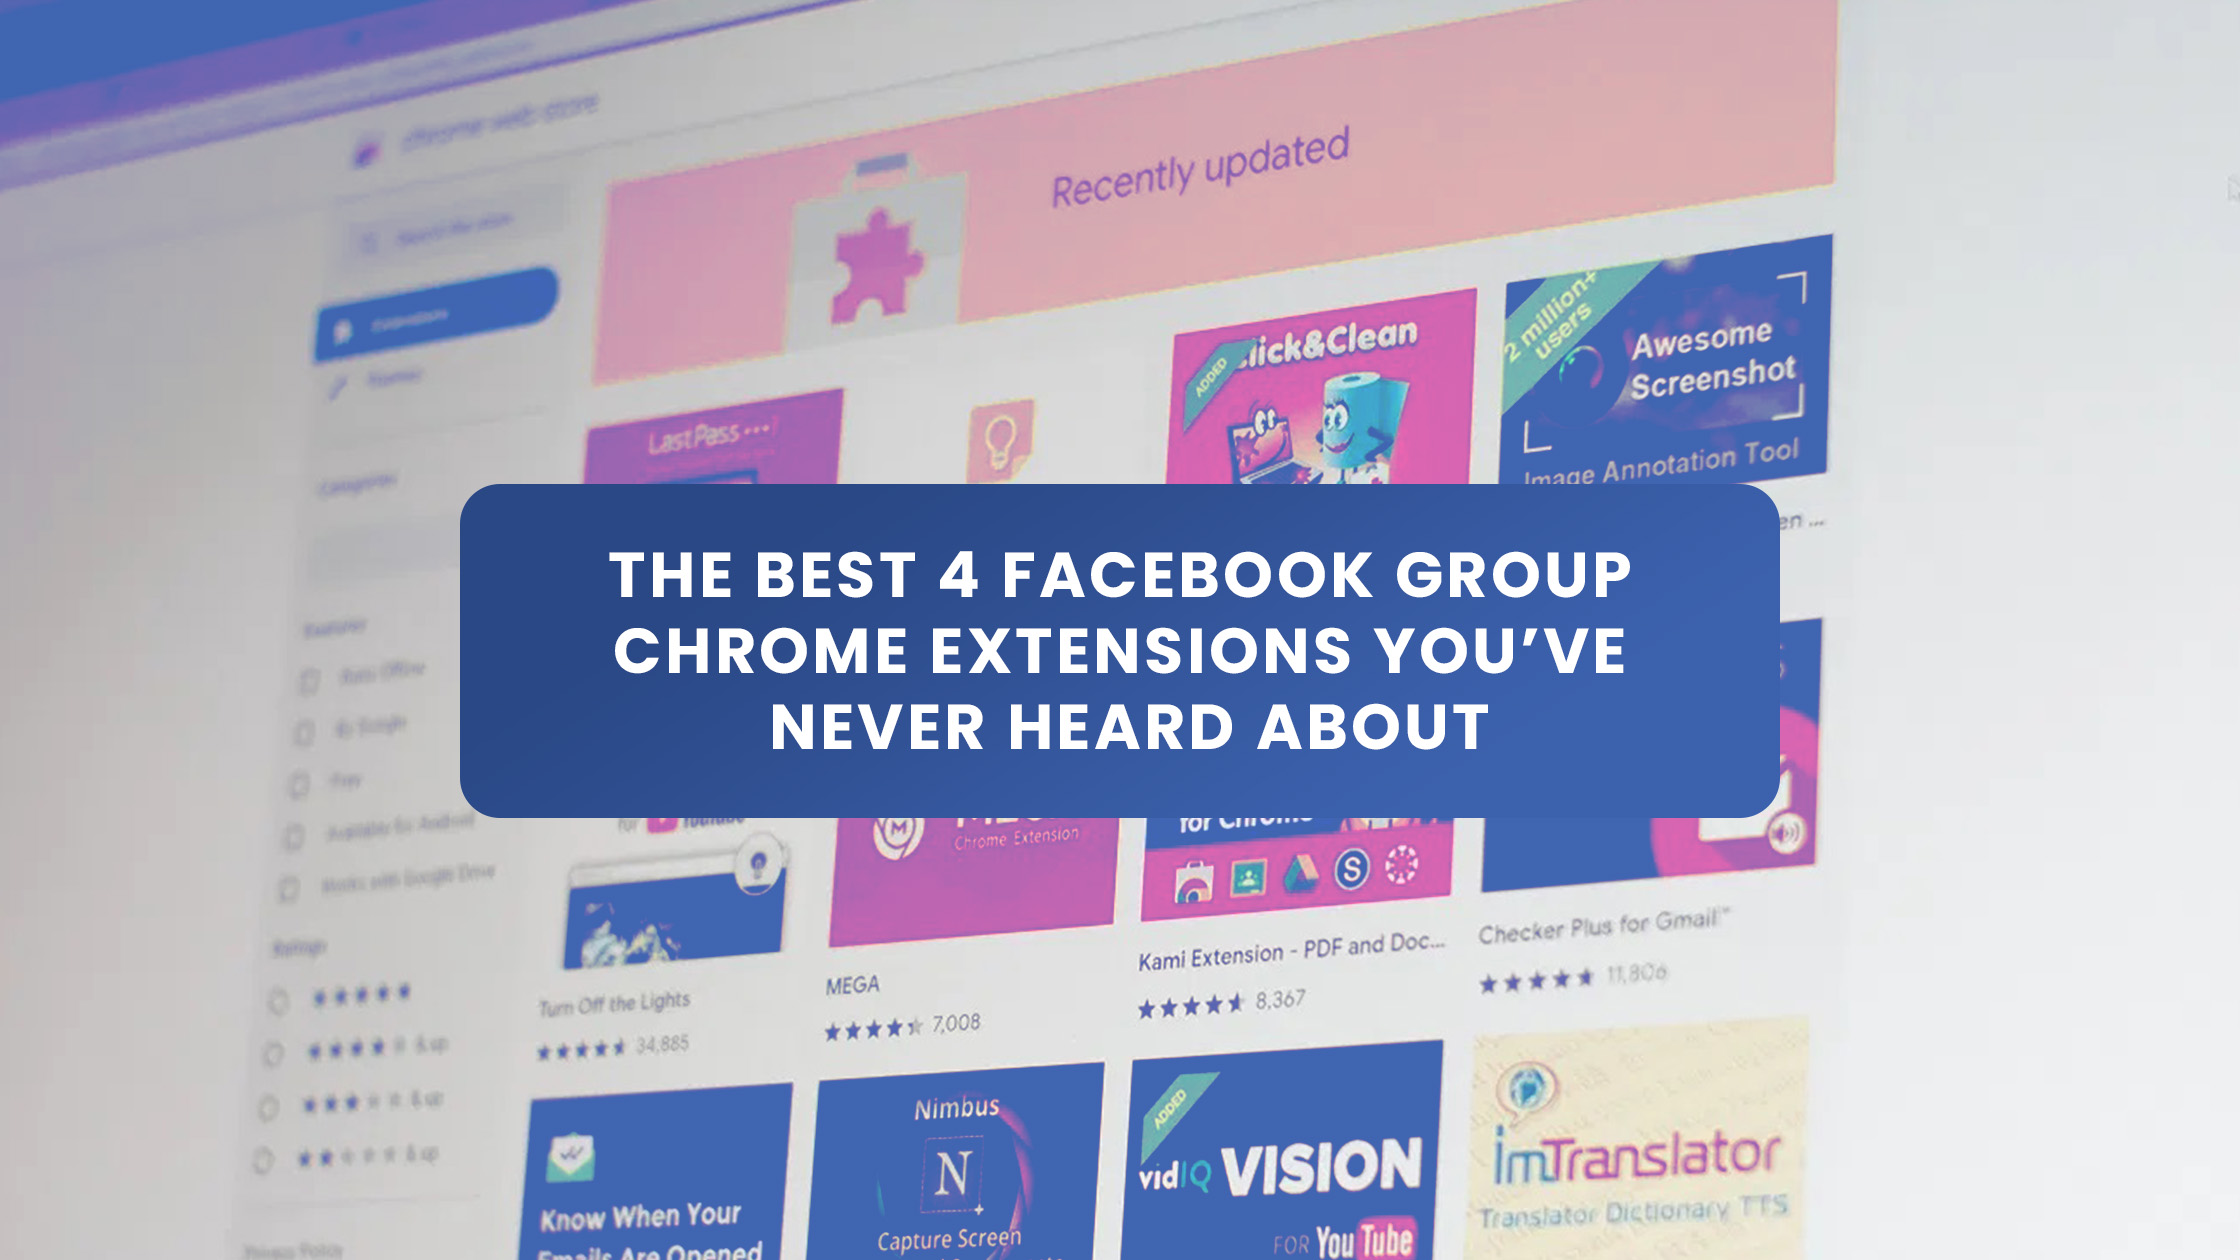 The Best 4 Facebook Group Chrome Extensions You've Never Heard About